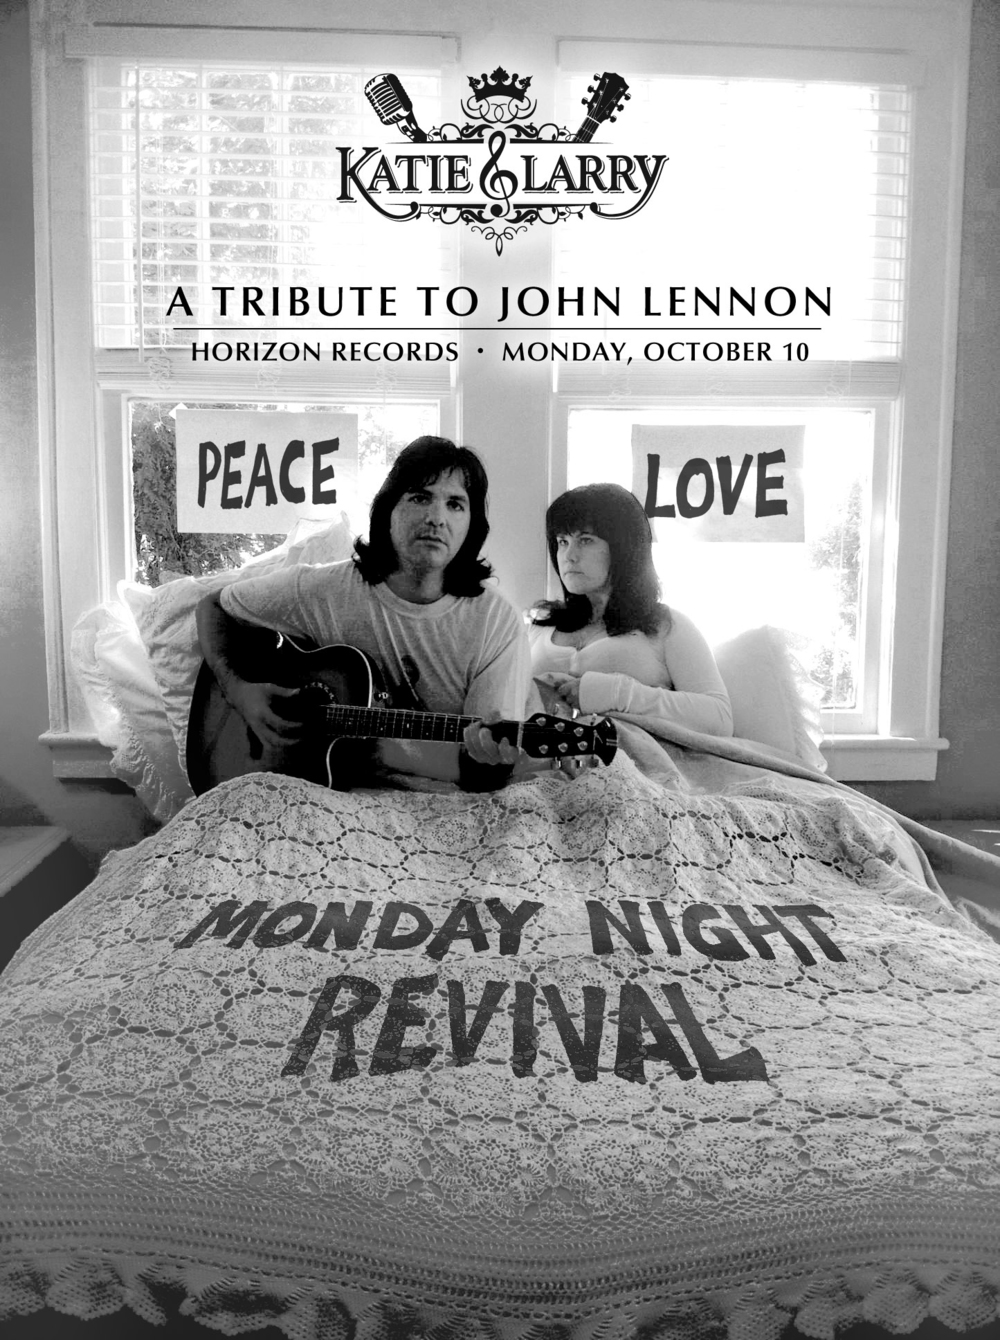 Monday Night Revival poster